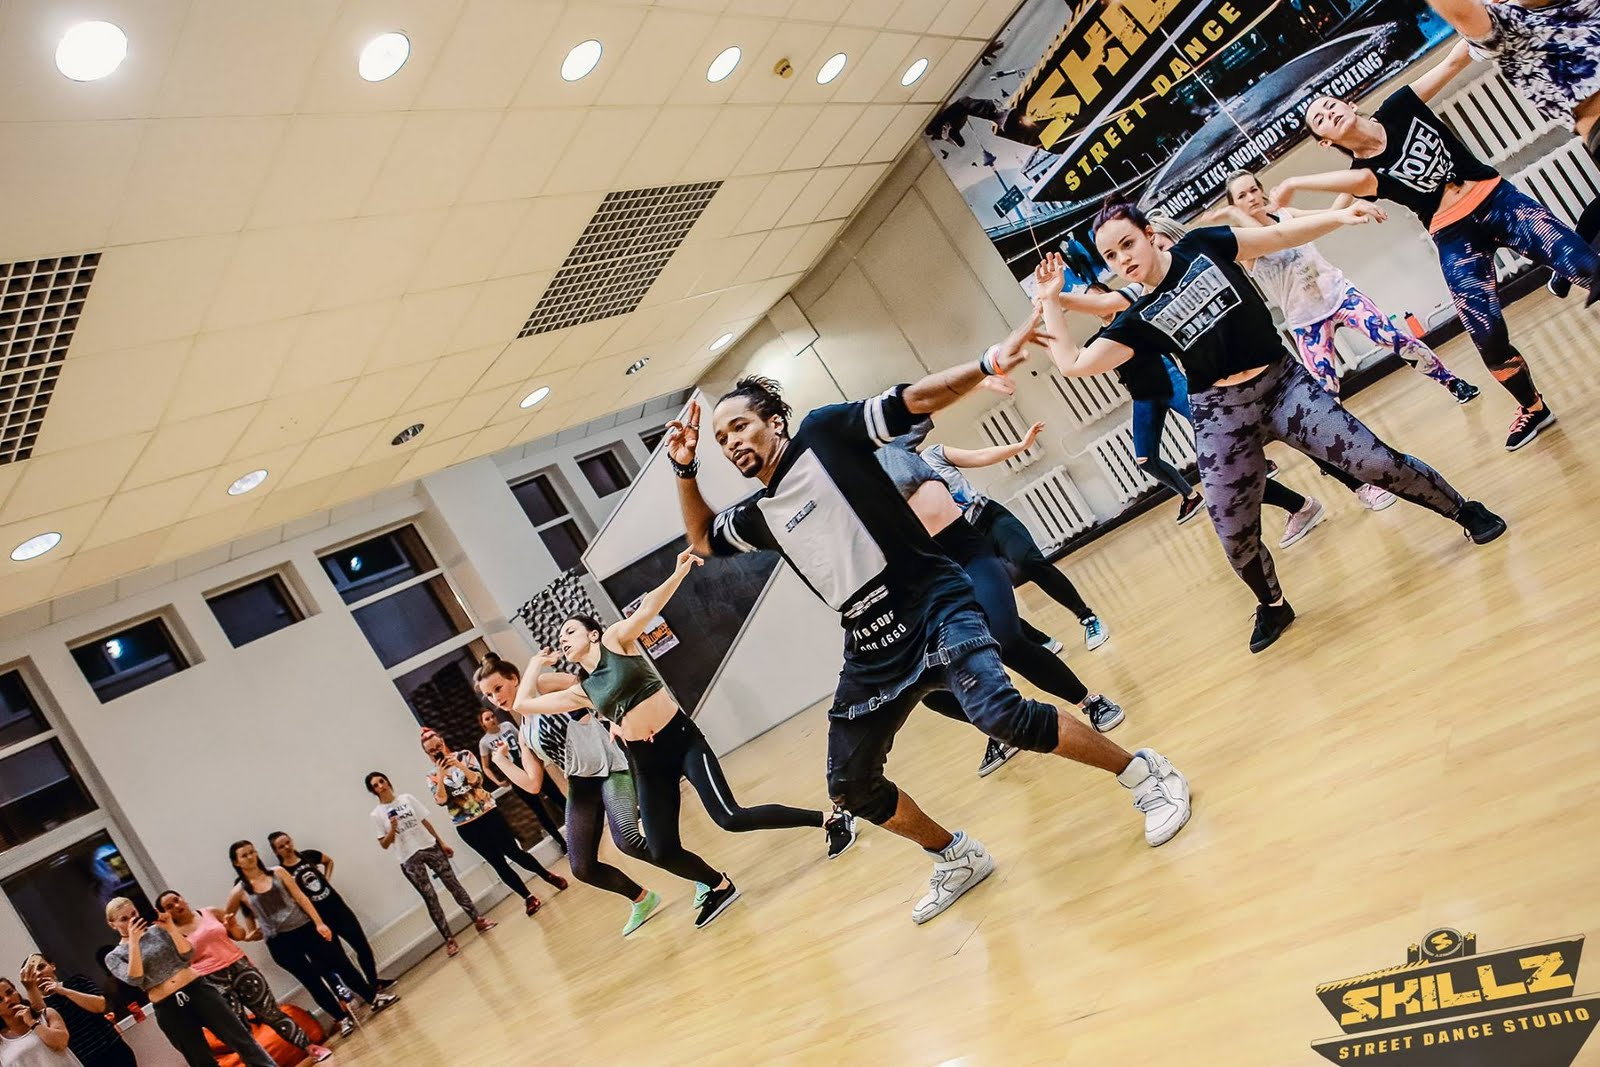 Dancehall workshop with Jiggy (France) - 32.jpg